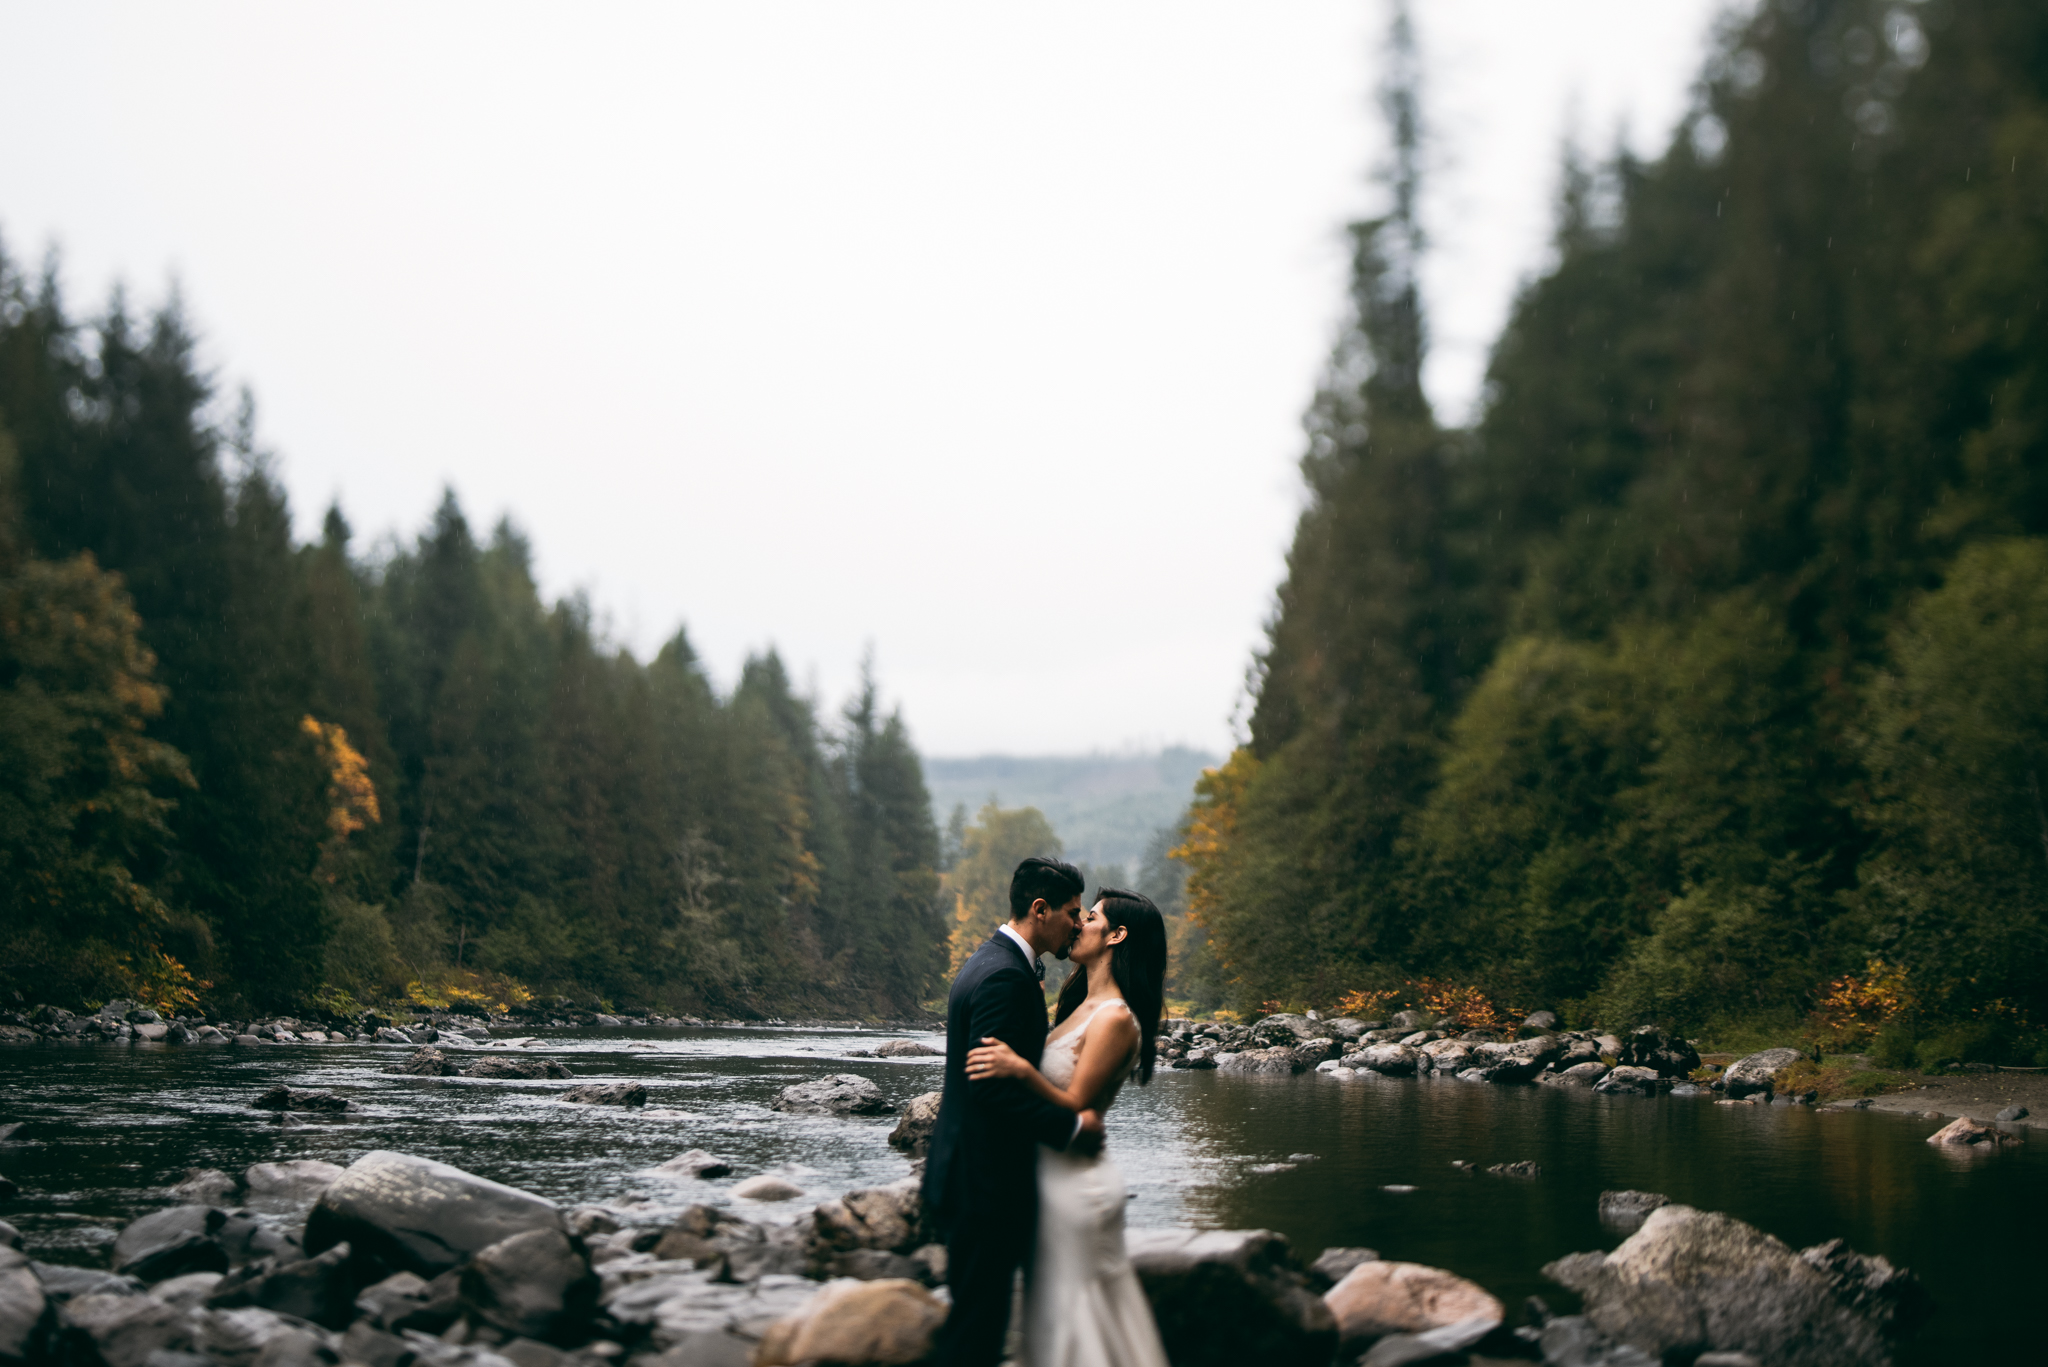 ©Isaiah & Taylor Photography - Los Angeles Wedding - Snoqualmie, Washington Honeymoon-030.jpg